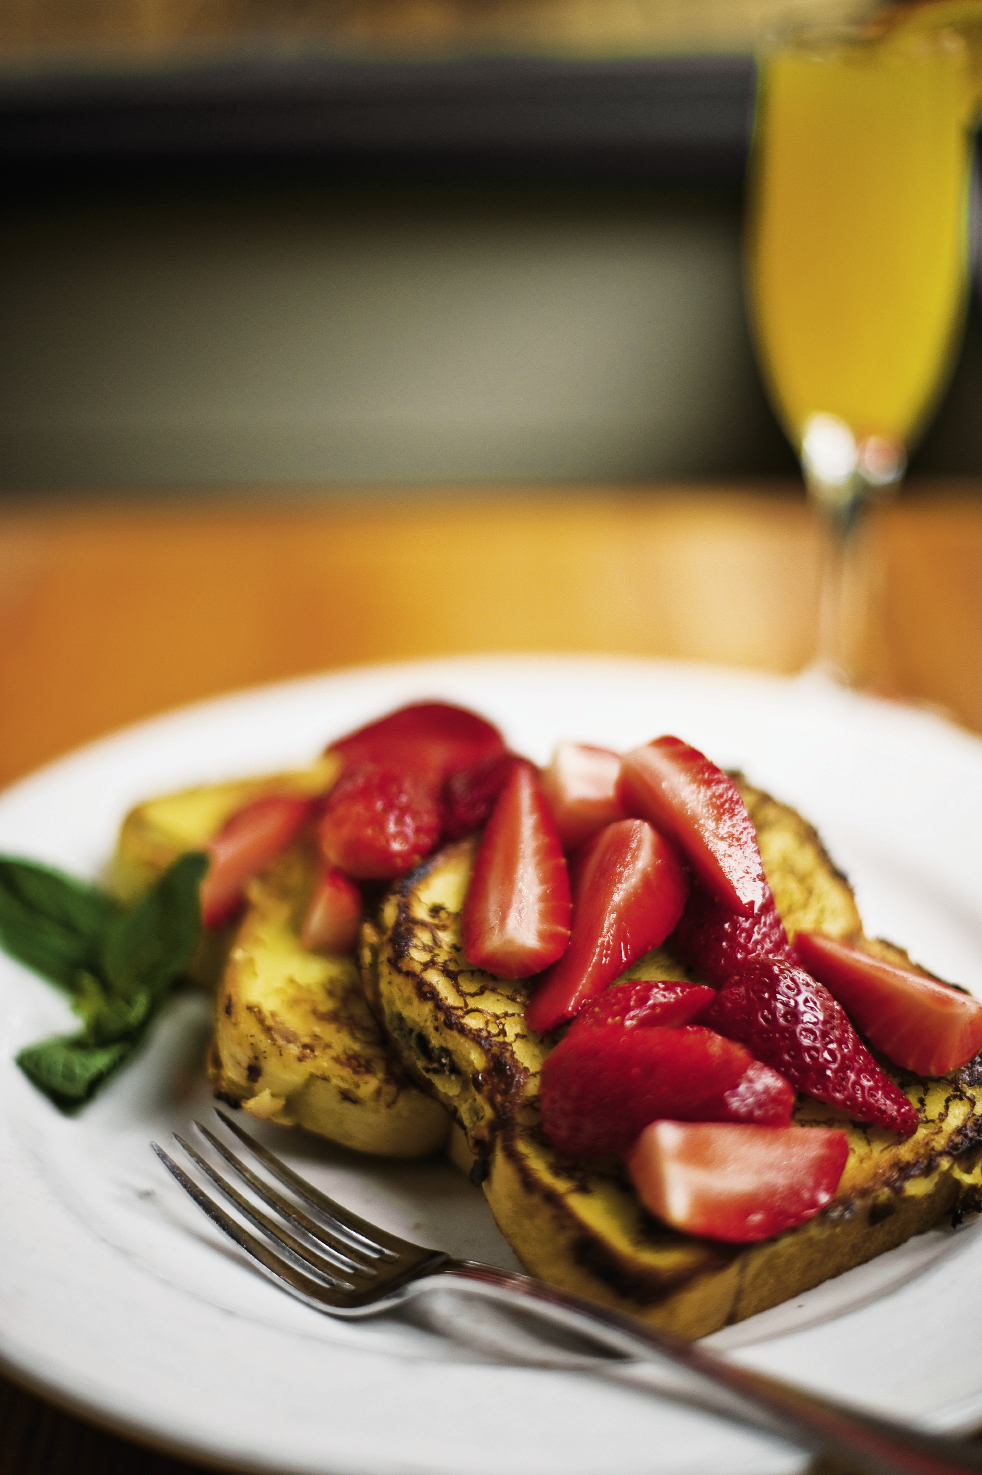 """Fat Hen's crème brûlée French toast topped with strawberries is out of this world."""" – Camilla Nilsson, assistant art director"""